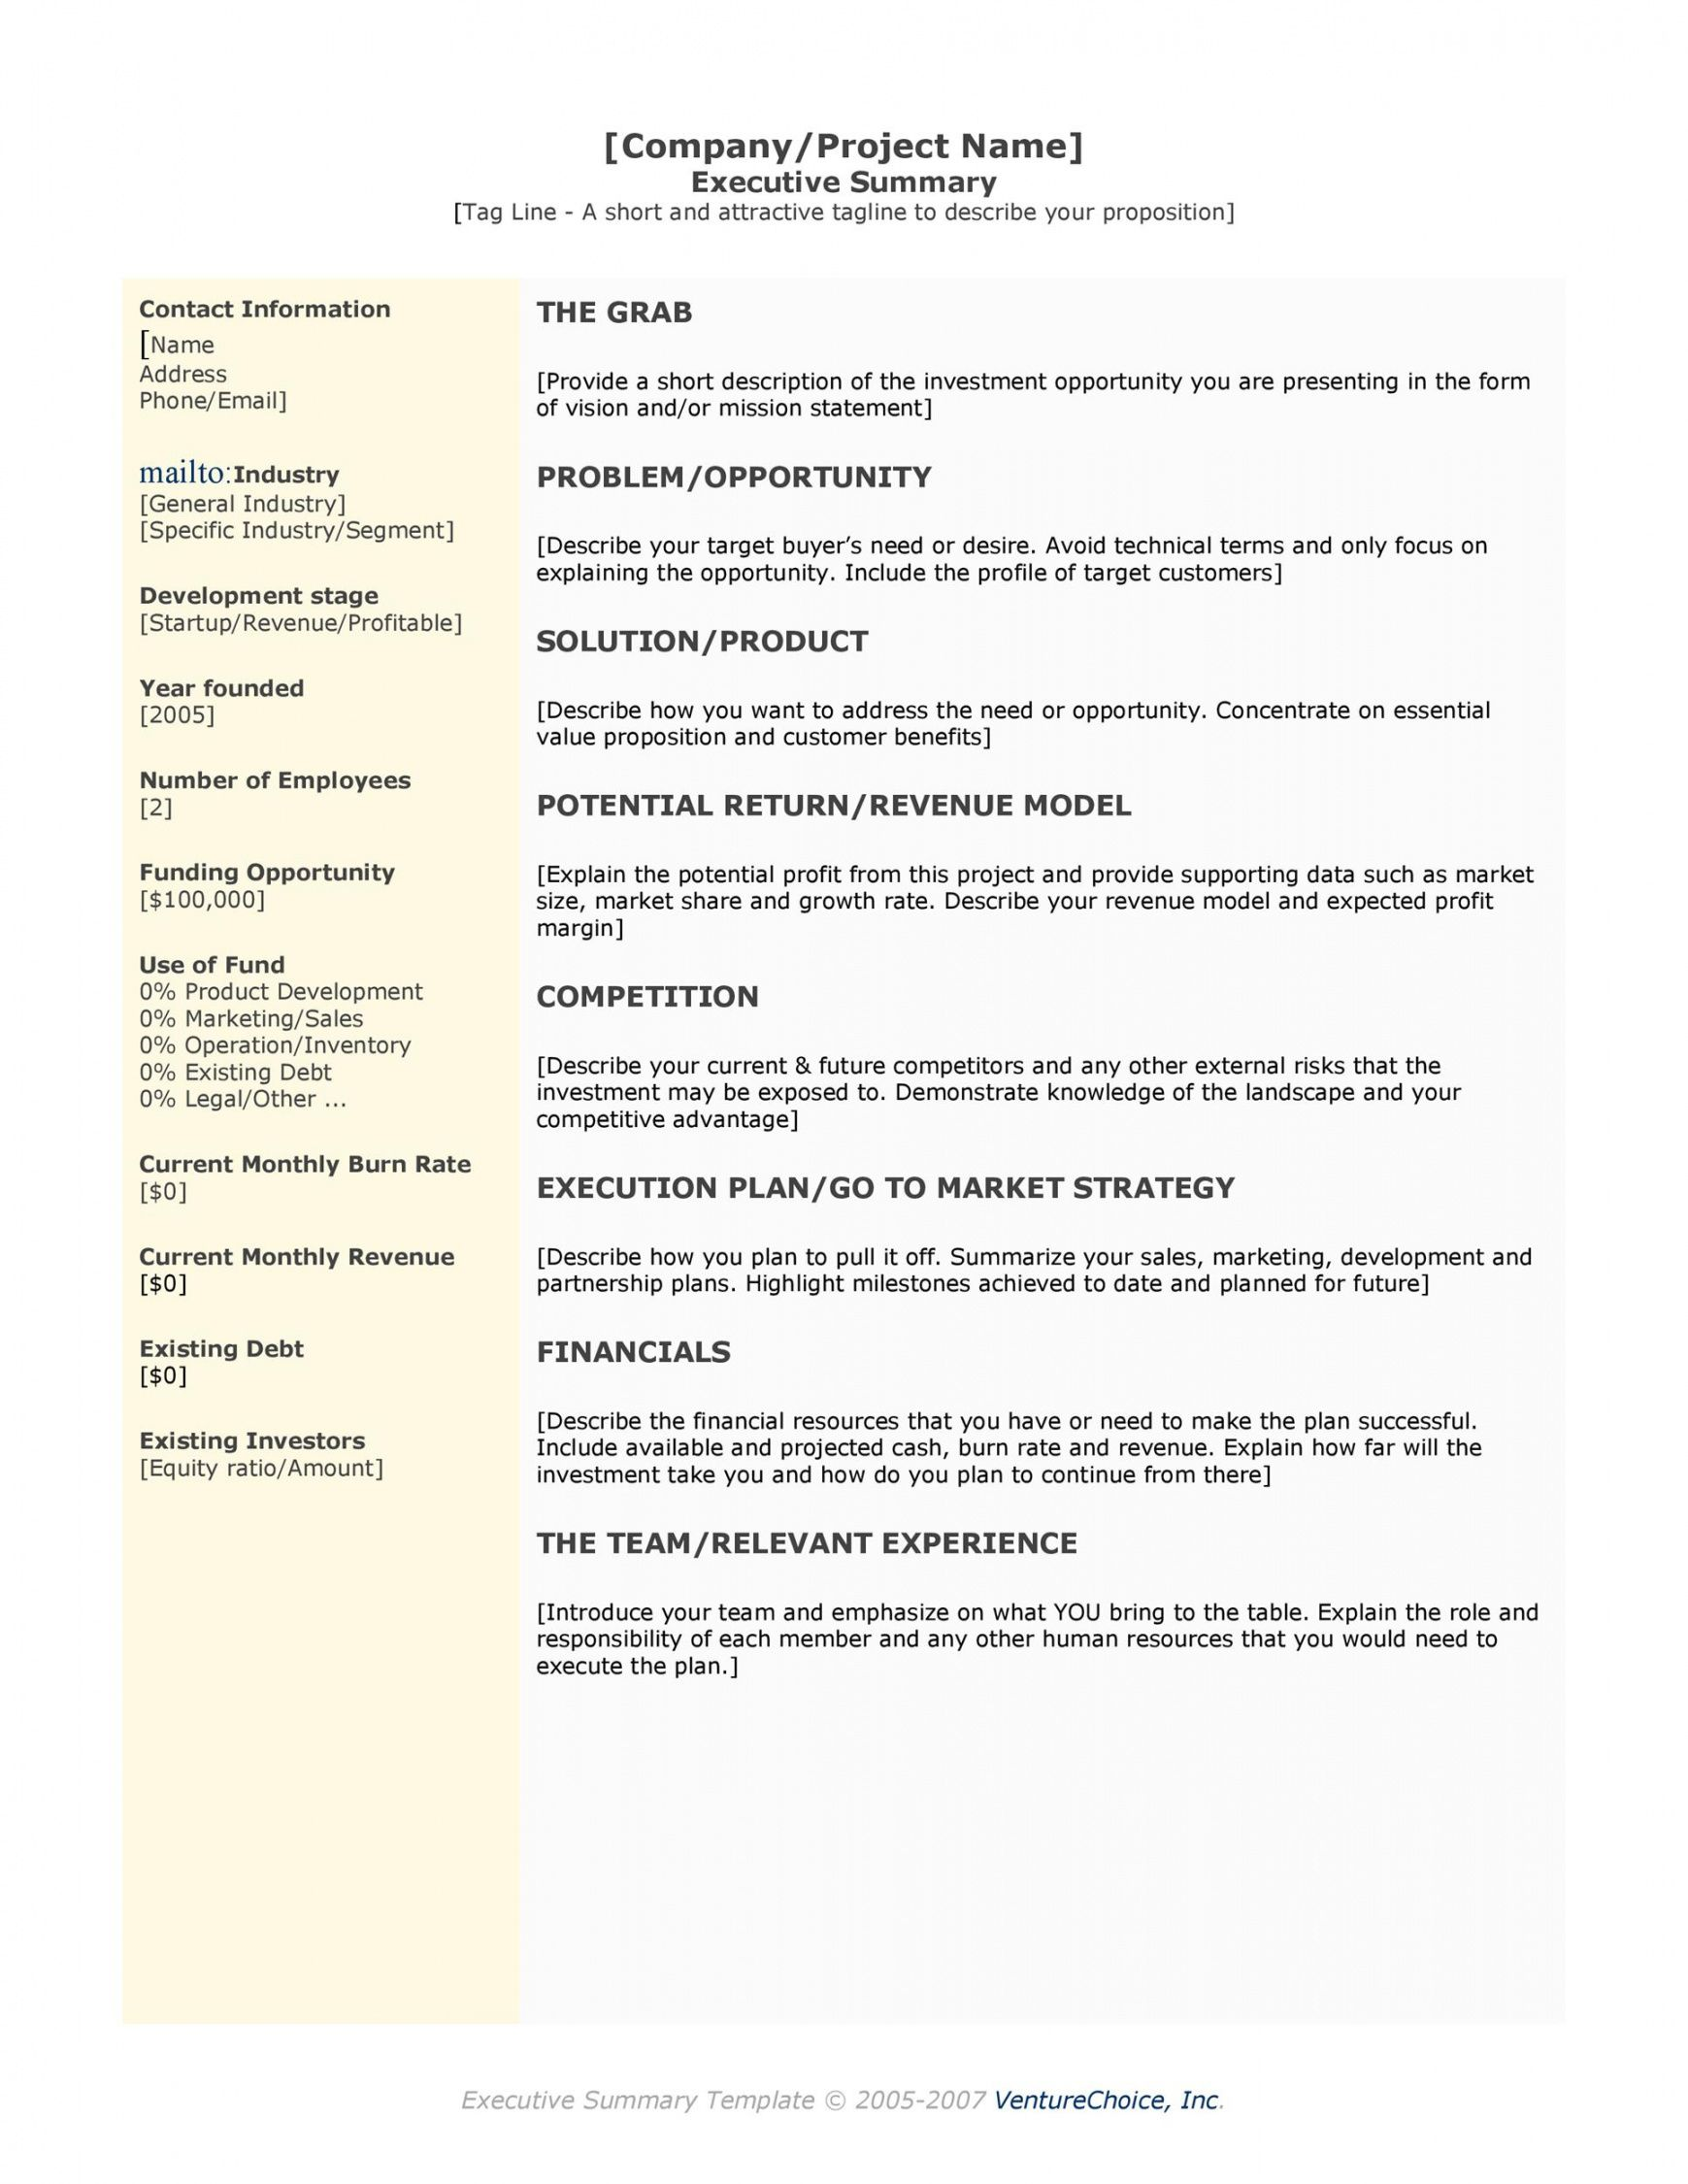 sample 30 perfect executive summary examples & templates project management summary template example